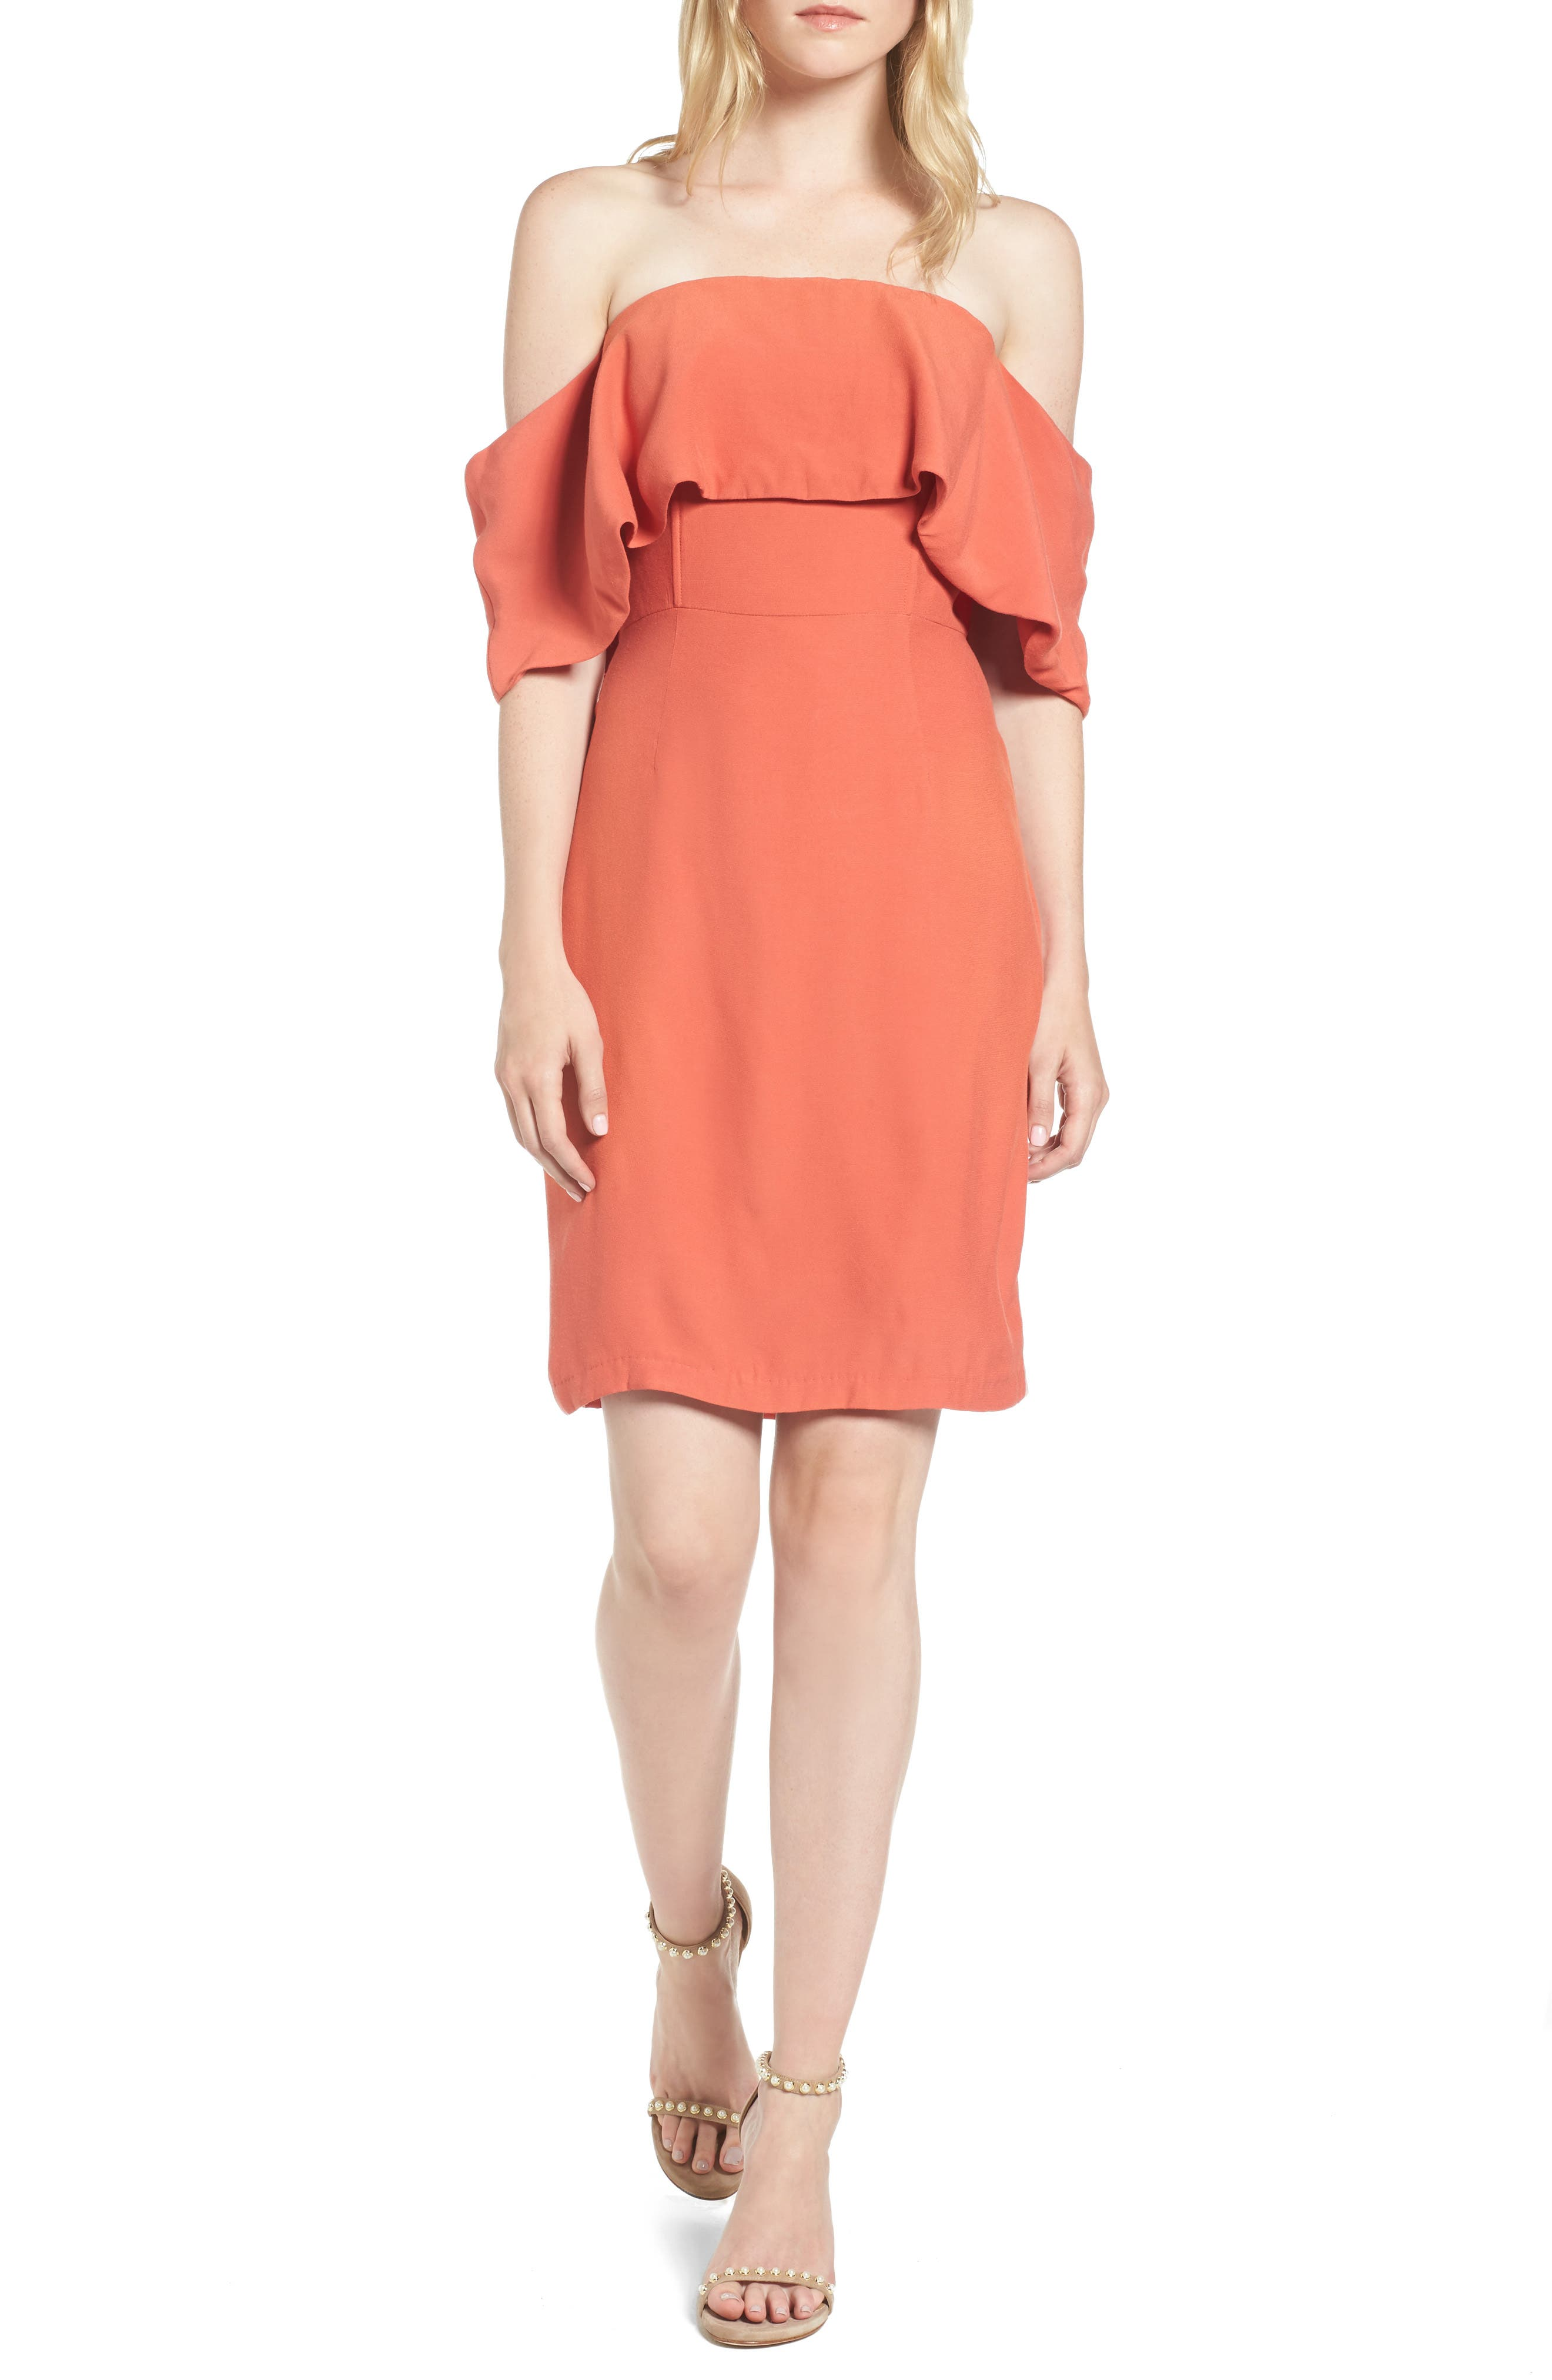 cupcakes and cashmere Rudy Off the Shoulder Shift Dress